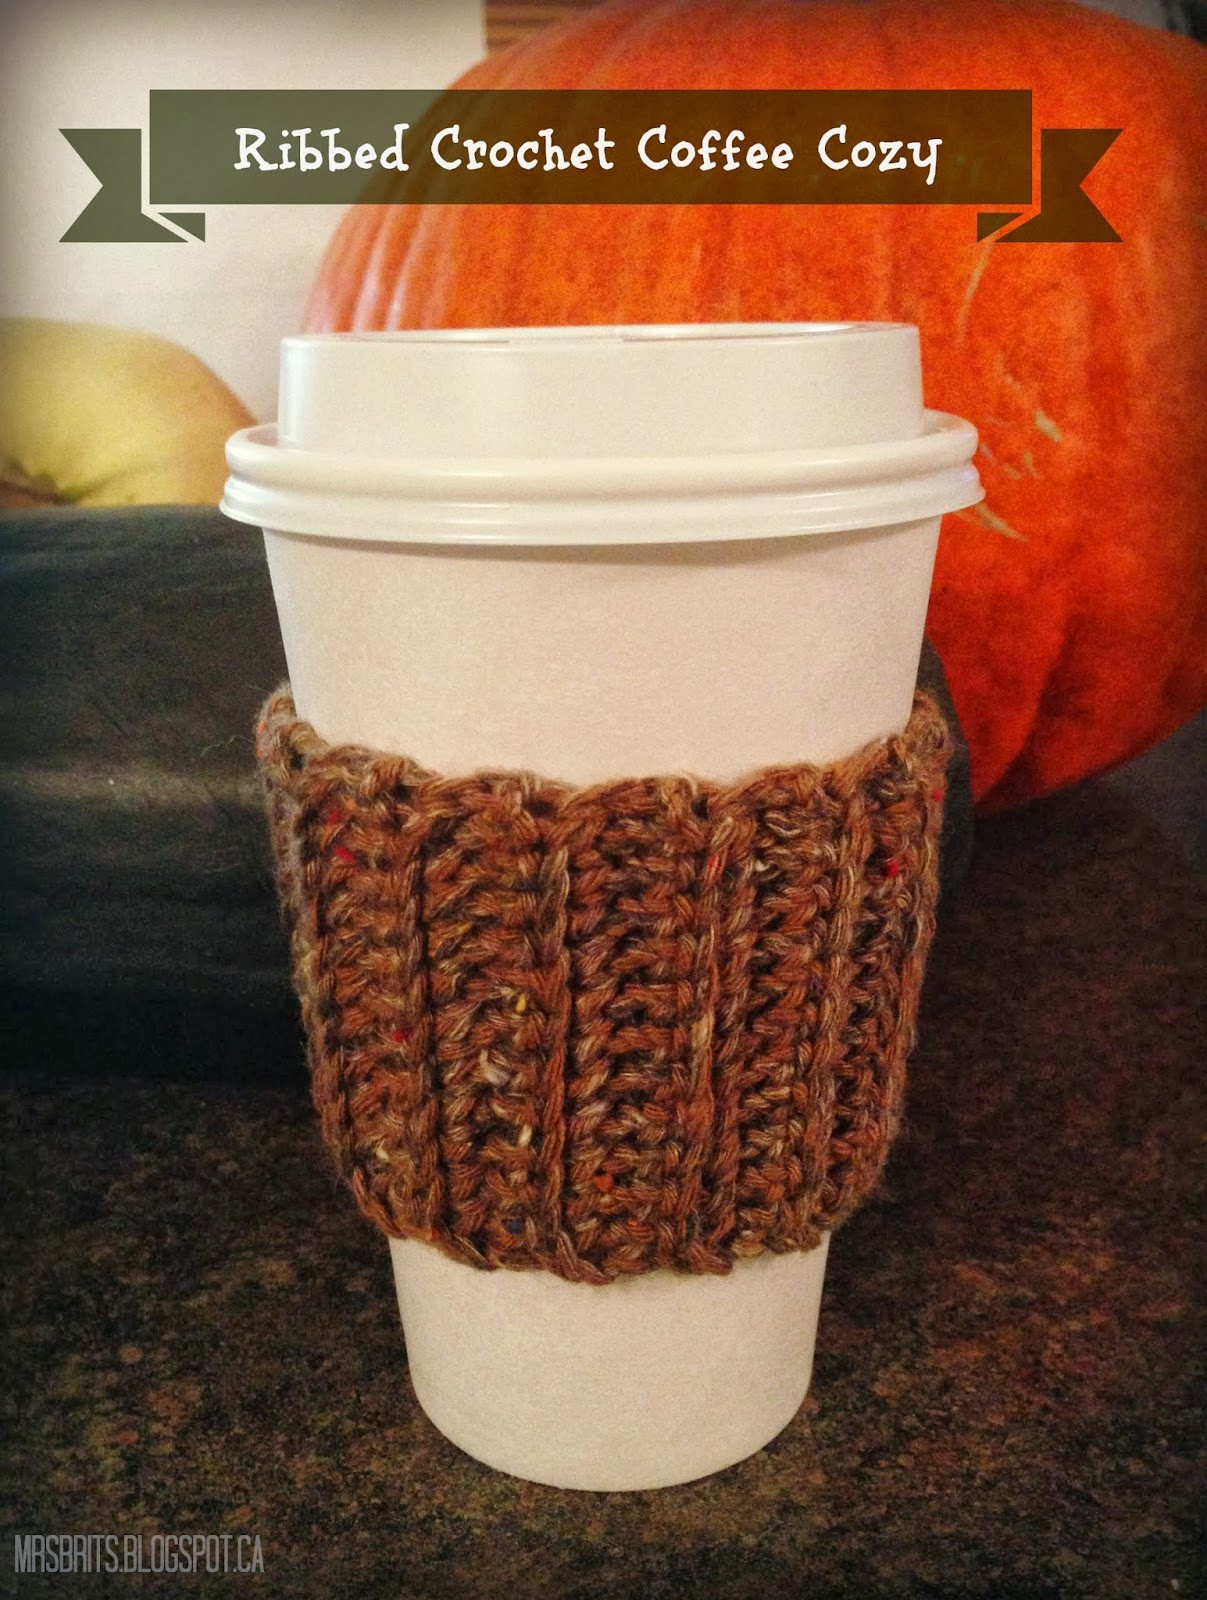 Crochet Coffee Cup Cozy Unique Mrsbrits Ribbed Coffee Cozy Crochet Pattern Of Crochet Coffee Cup Cozy Luxury Pdf Crochet Pattern Coffee Mug Cozy with button by